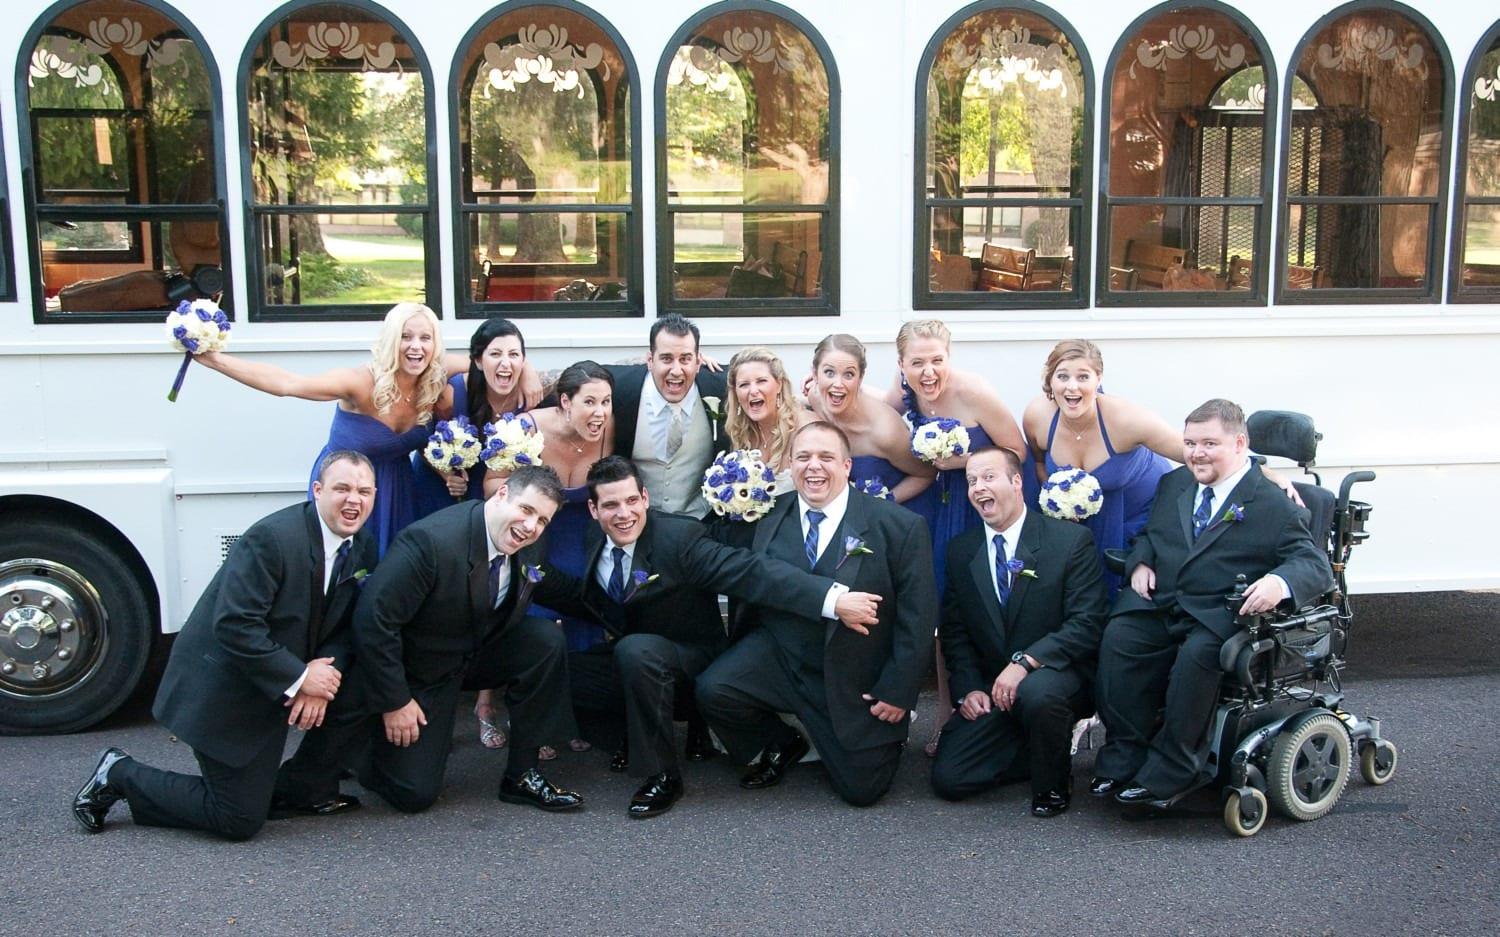 large group wedding photography in front of trolley